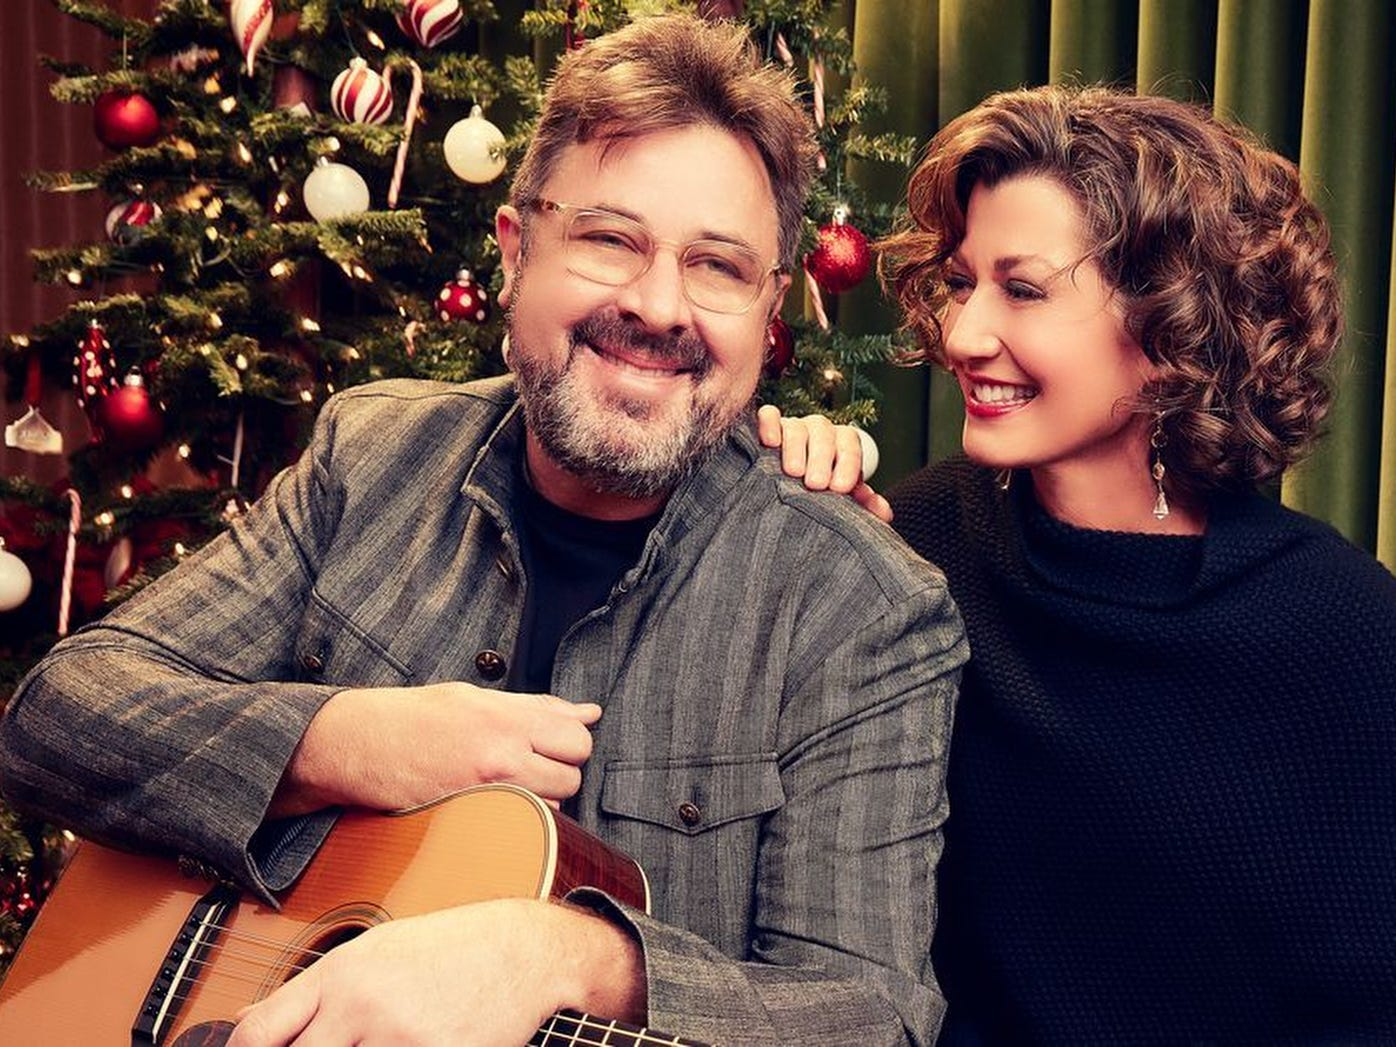 Dec. 5